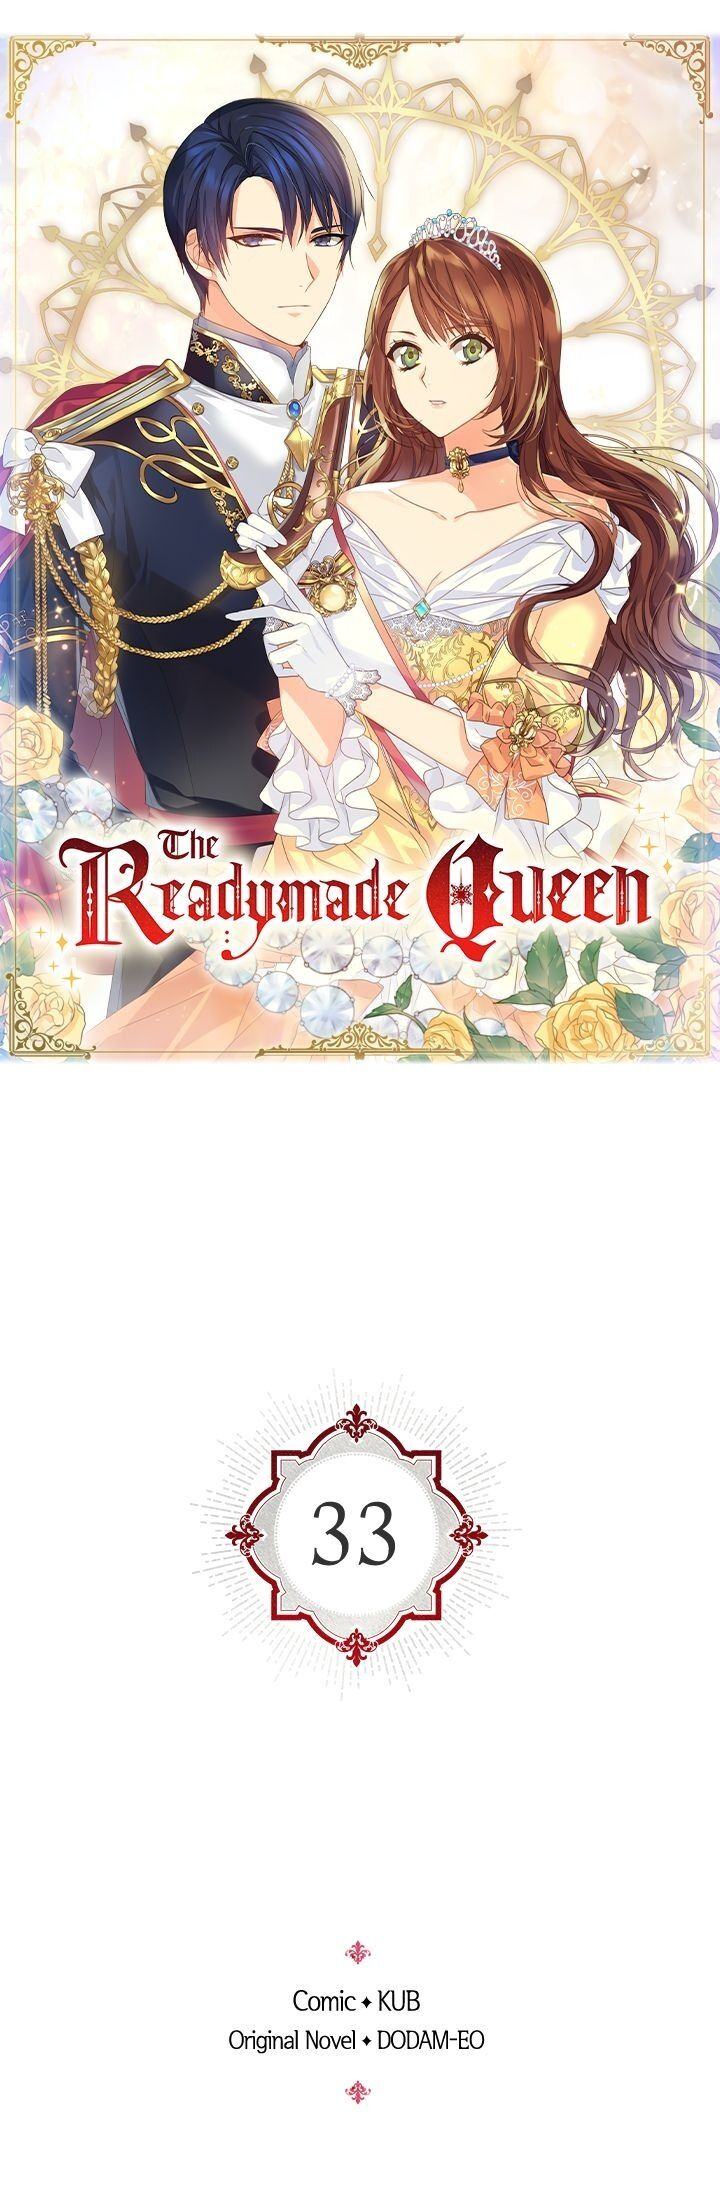 The Readymade Queen Chapter 33